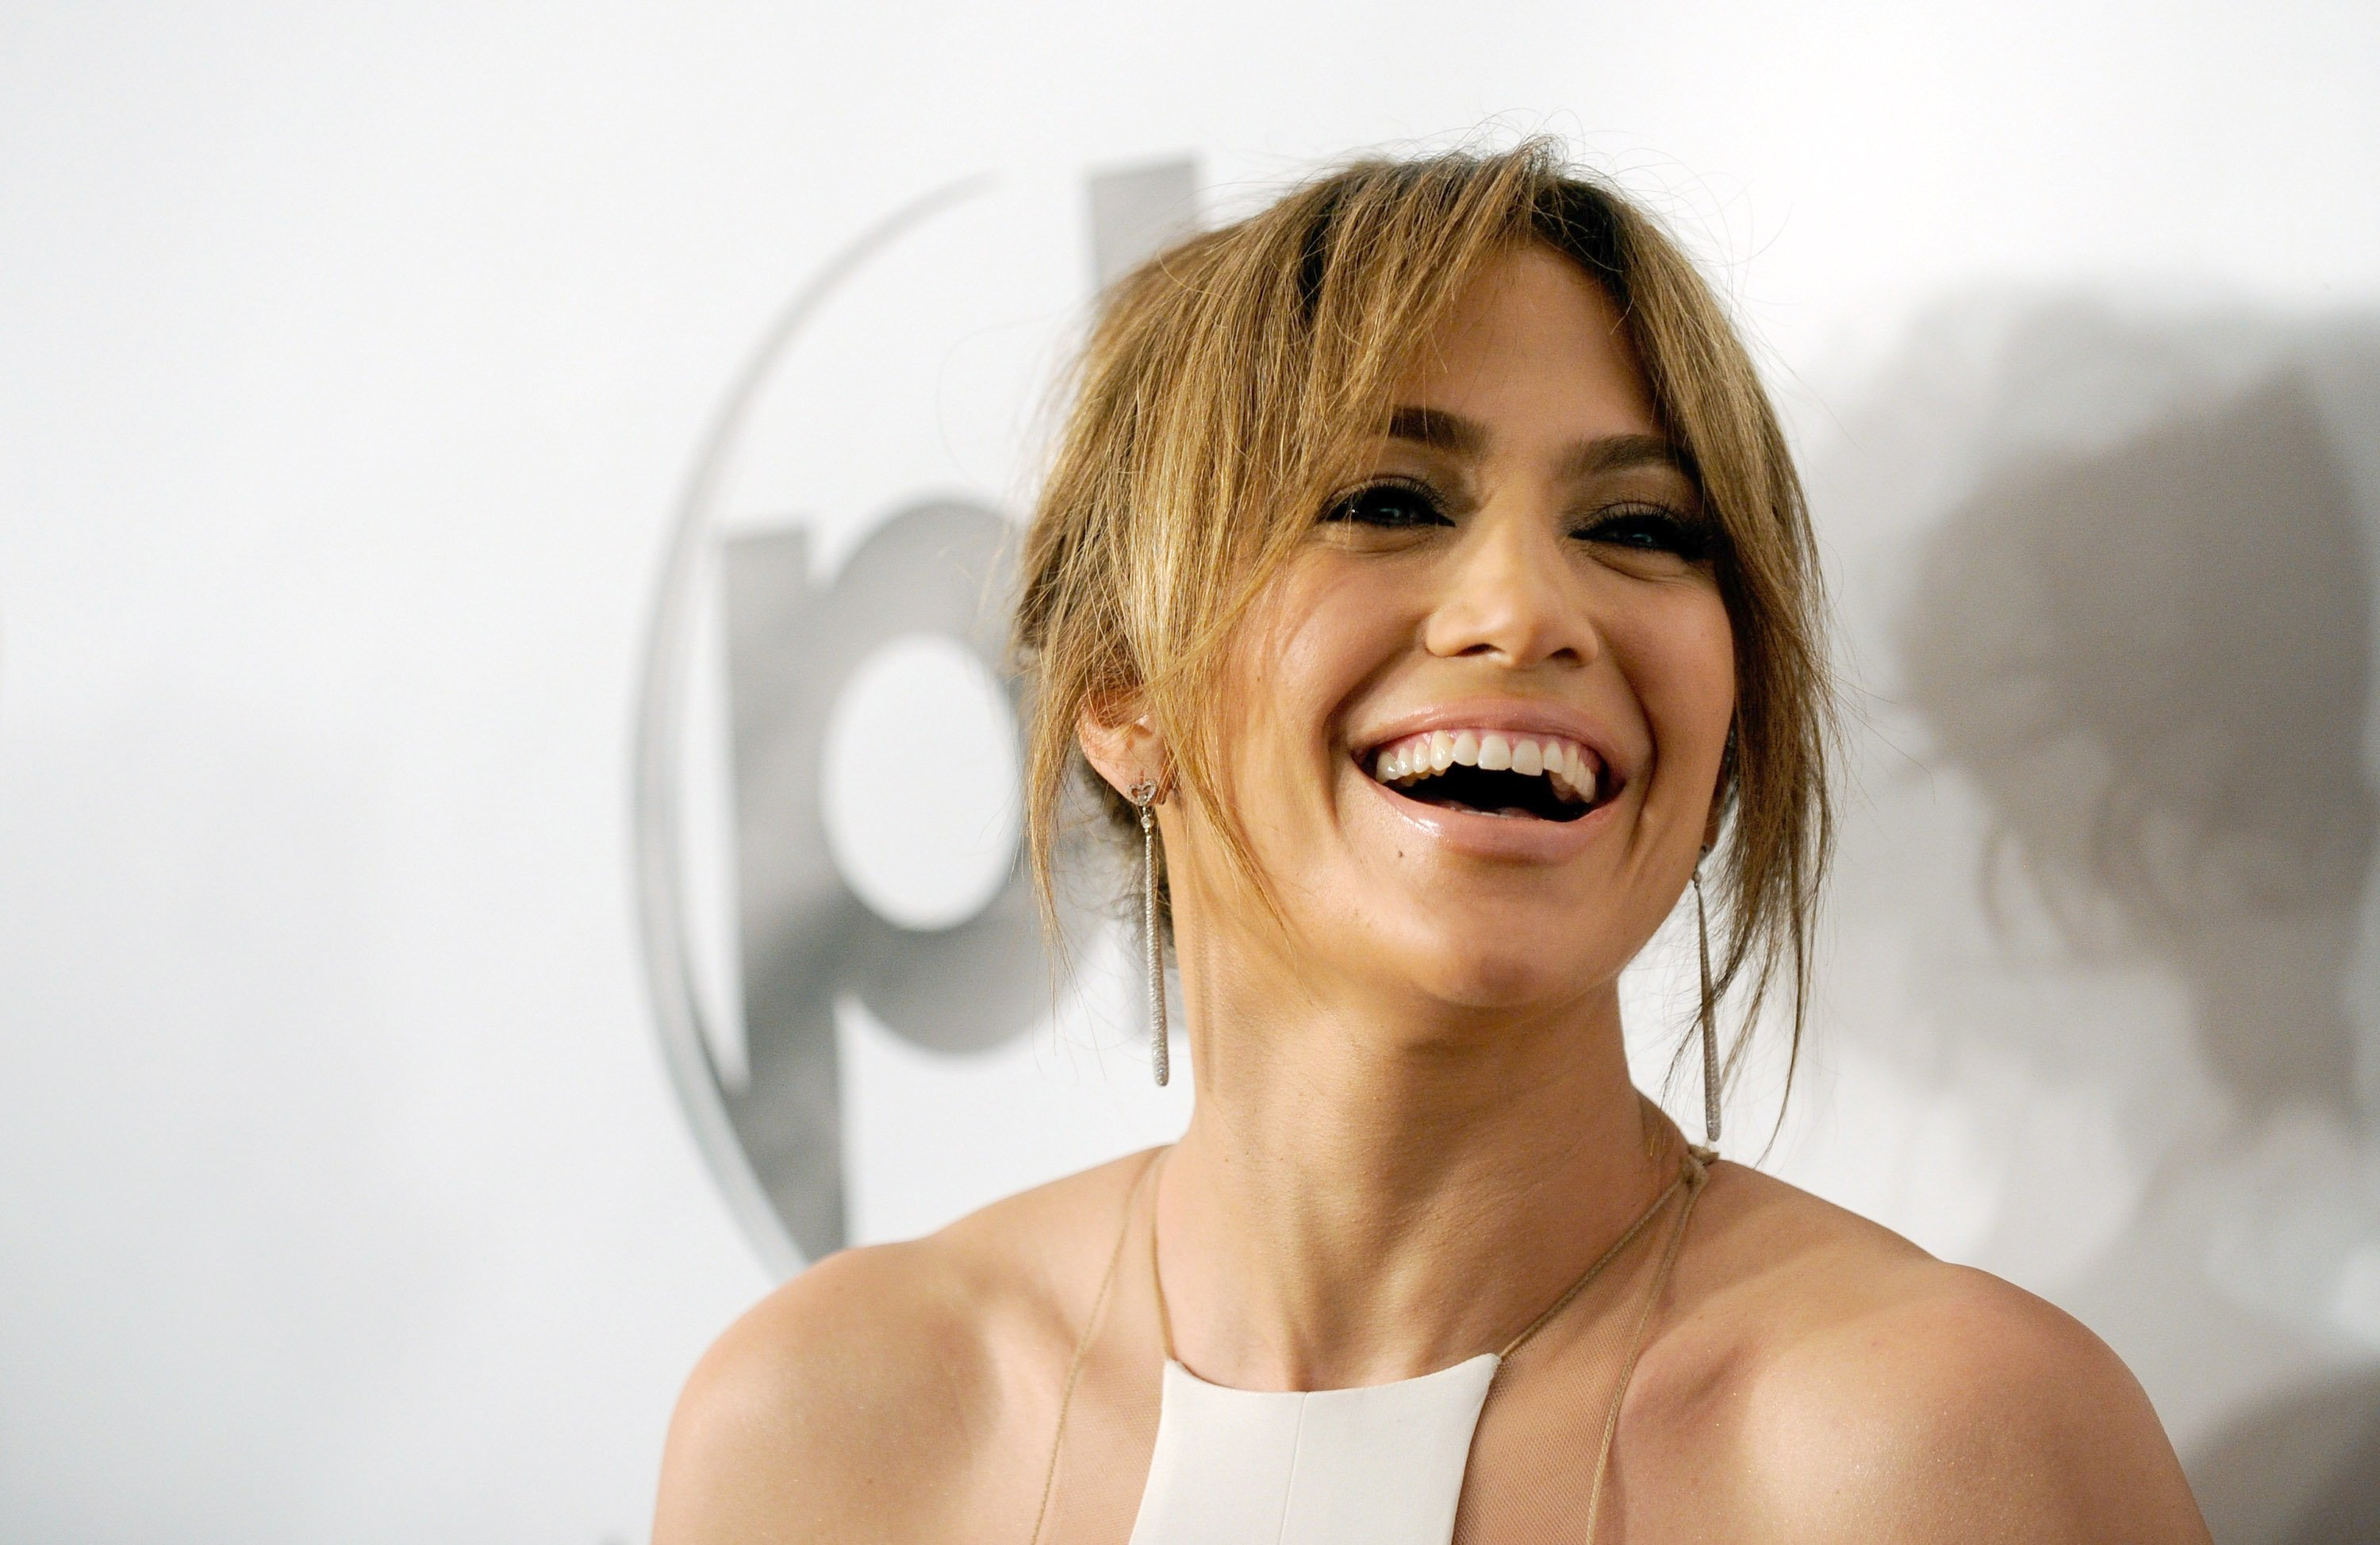 Image Credit: Getty Images / Jennifer Lopez at an event.